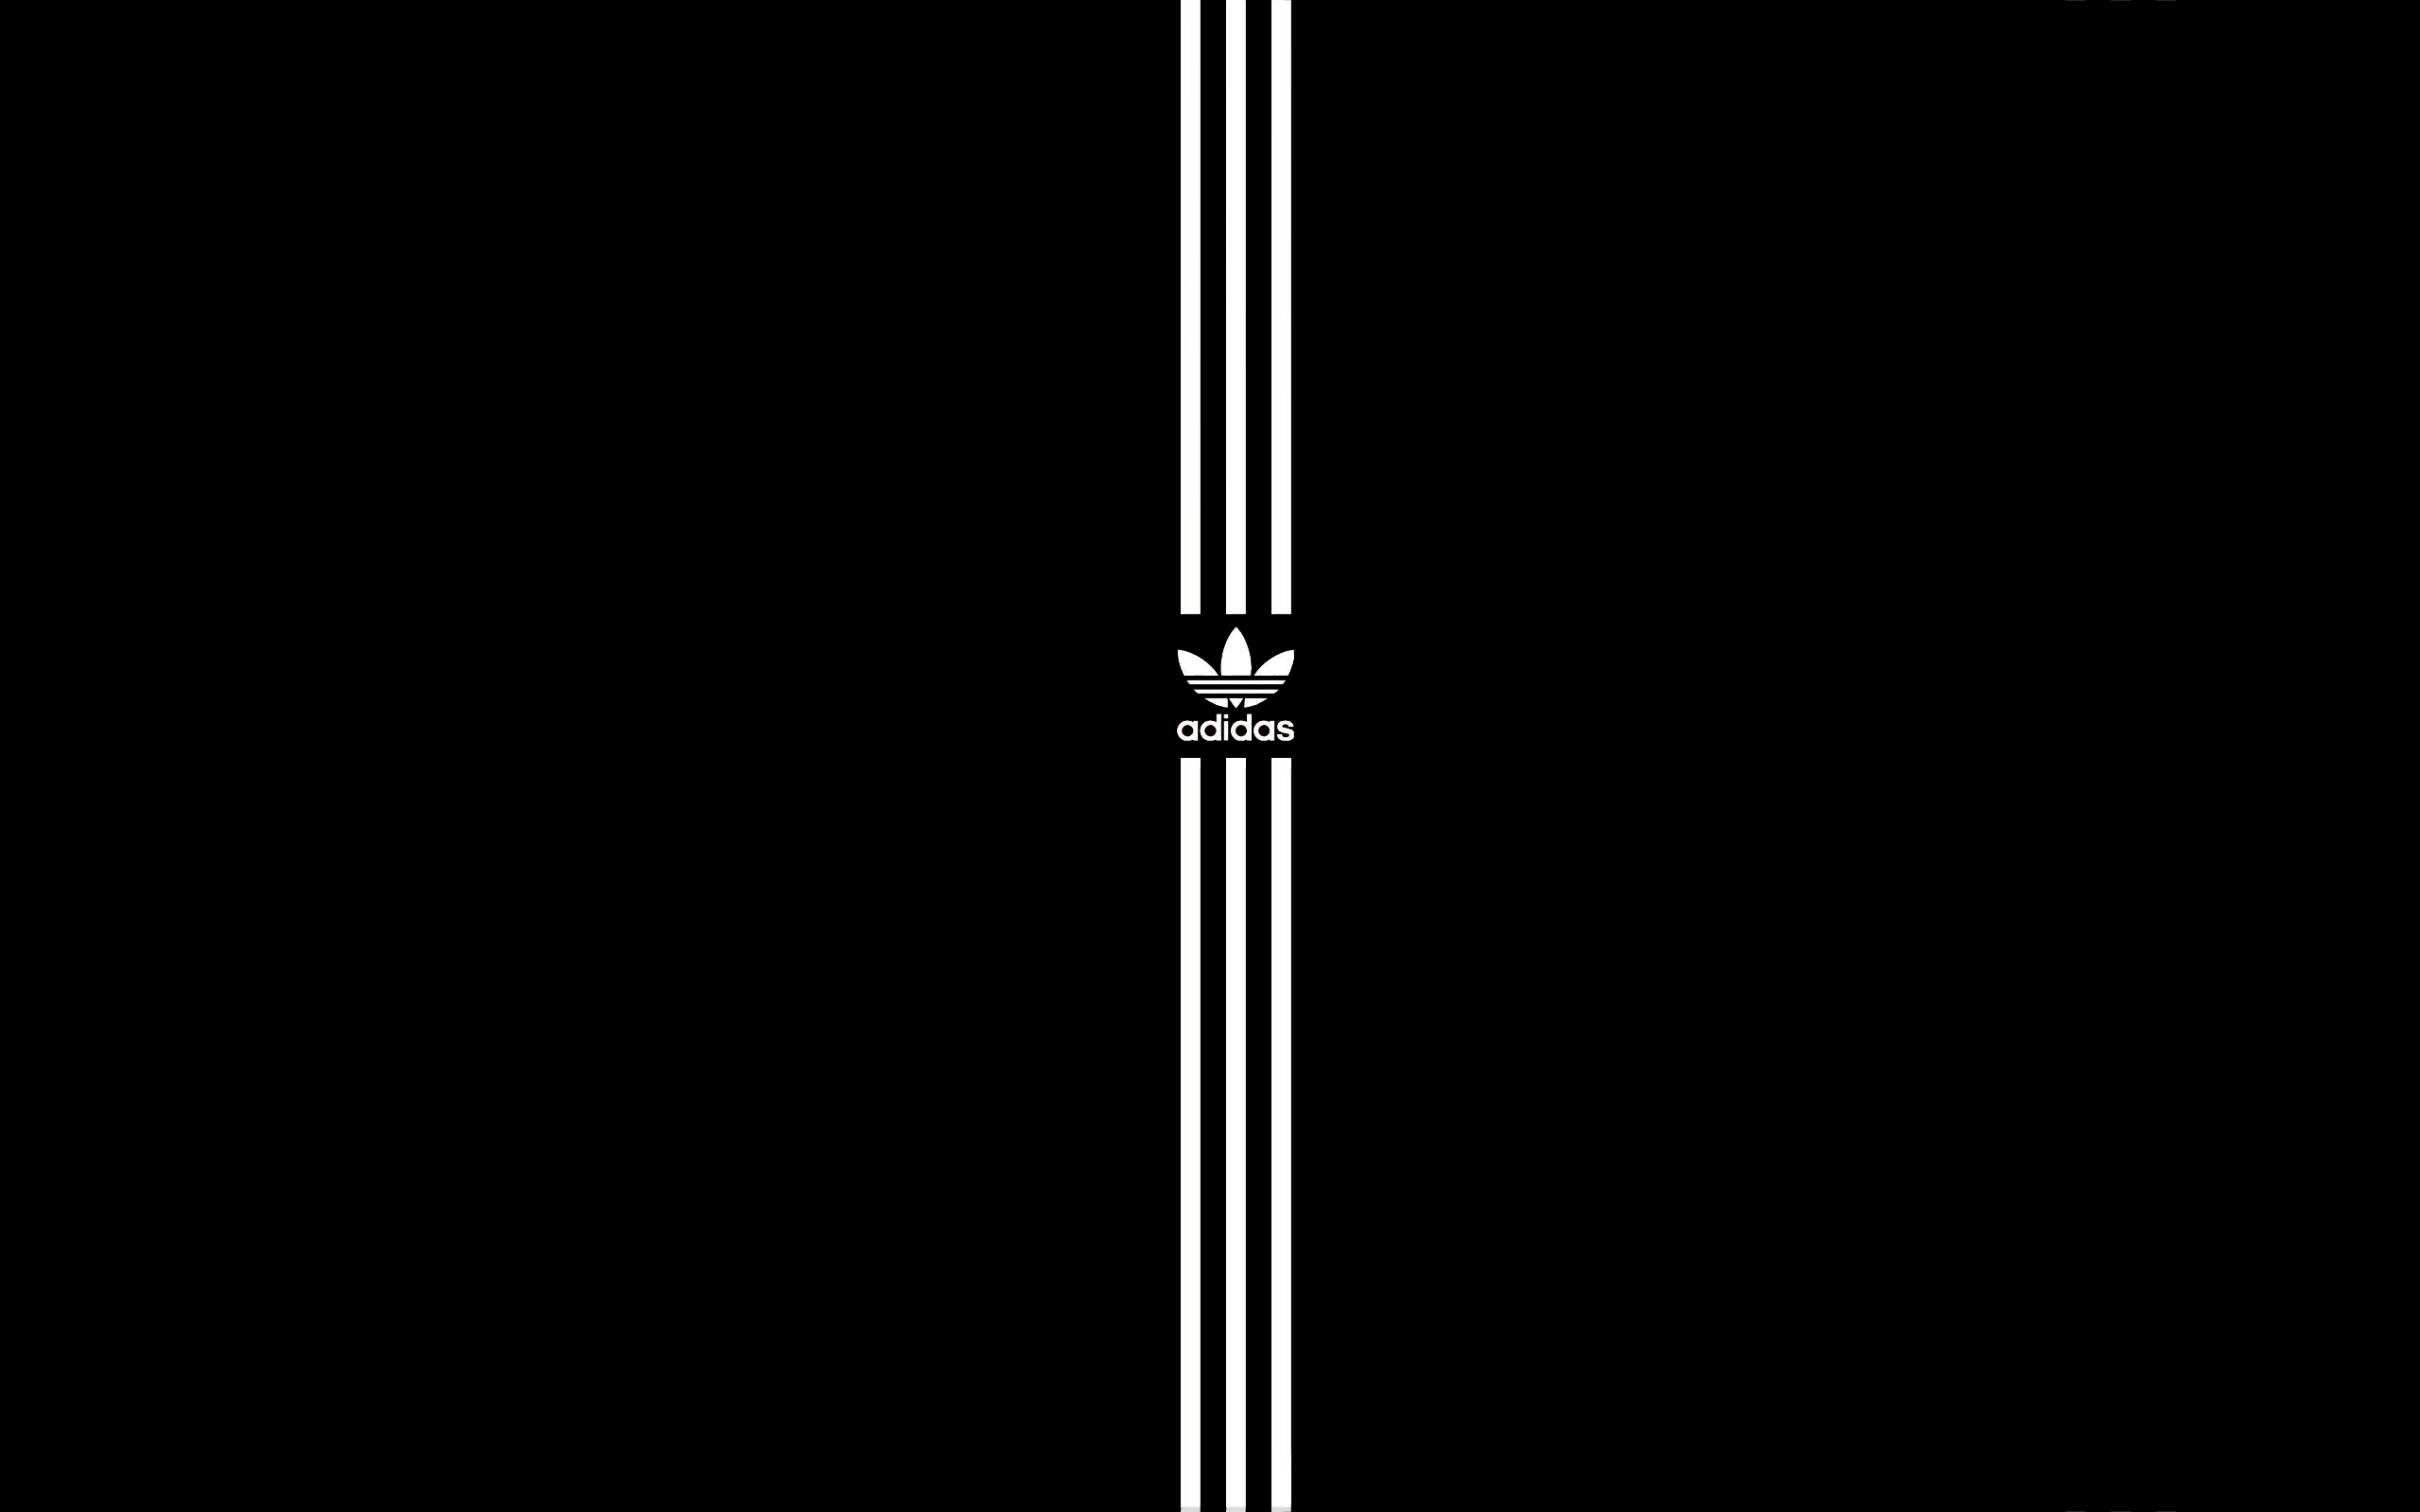 fantastic adidas wallpaper 45217